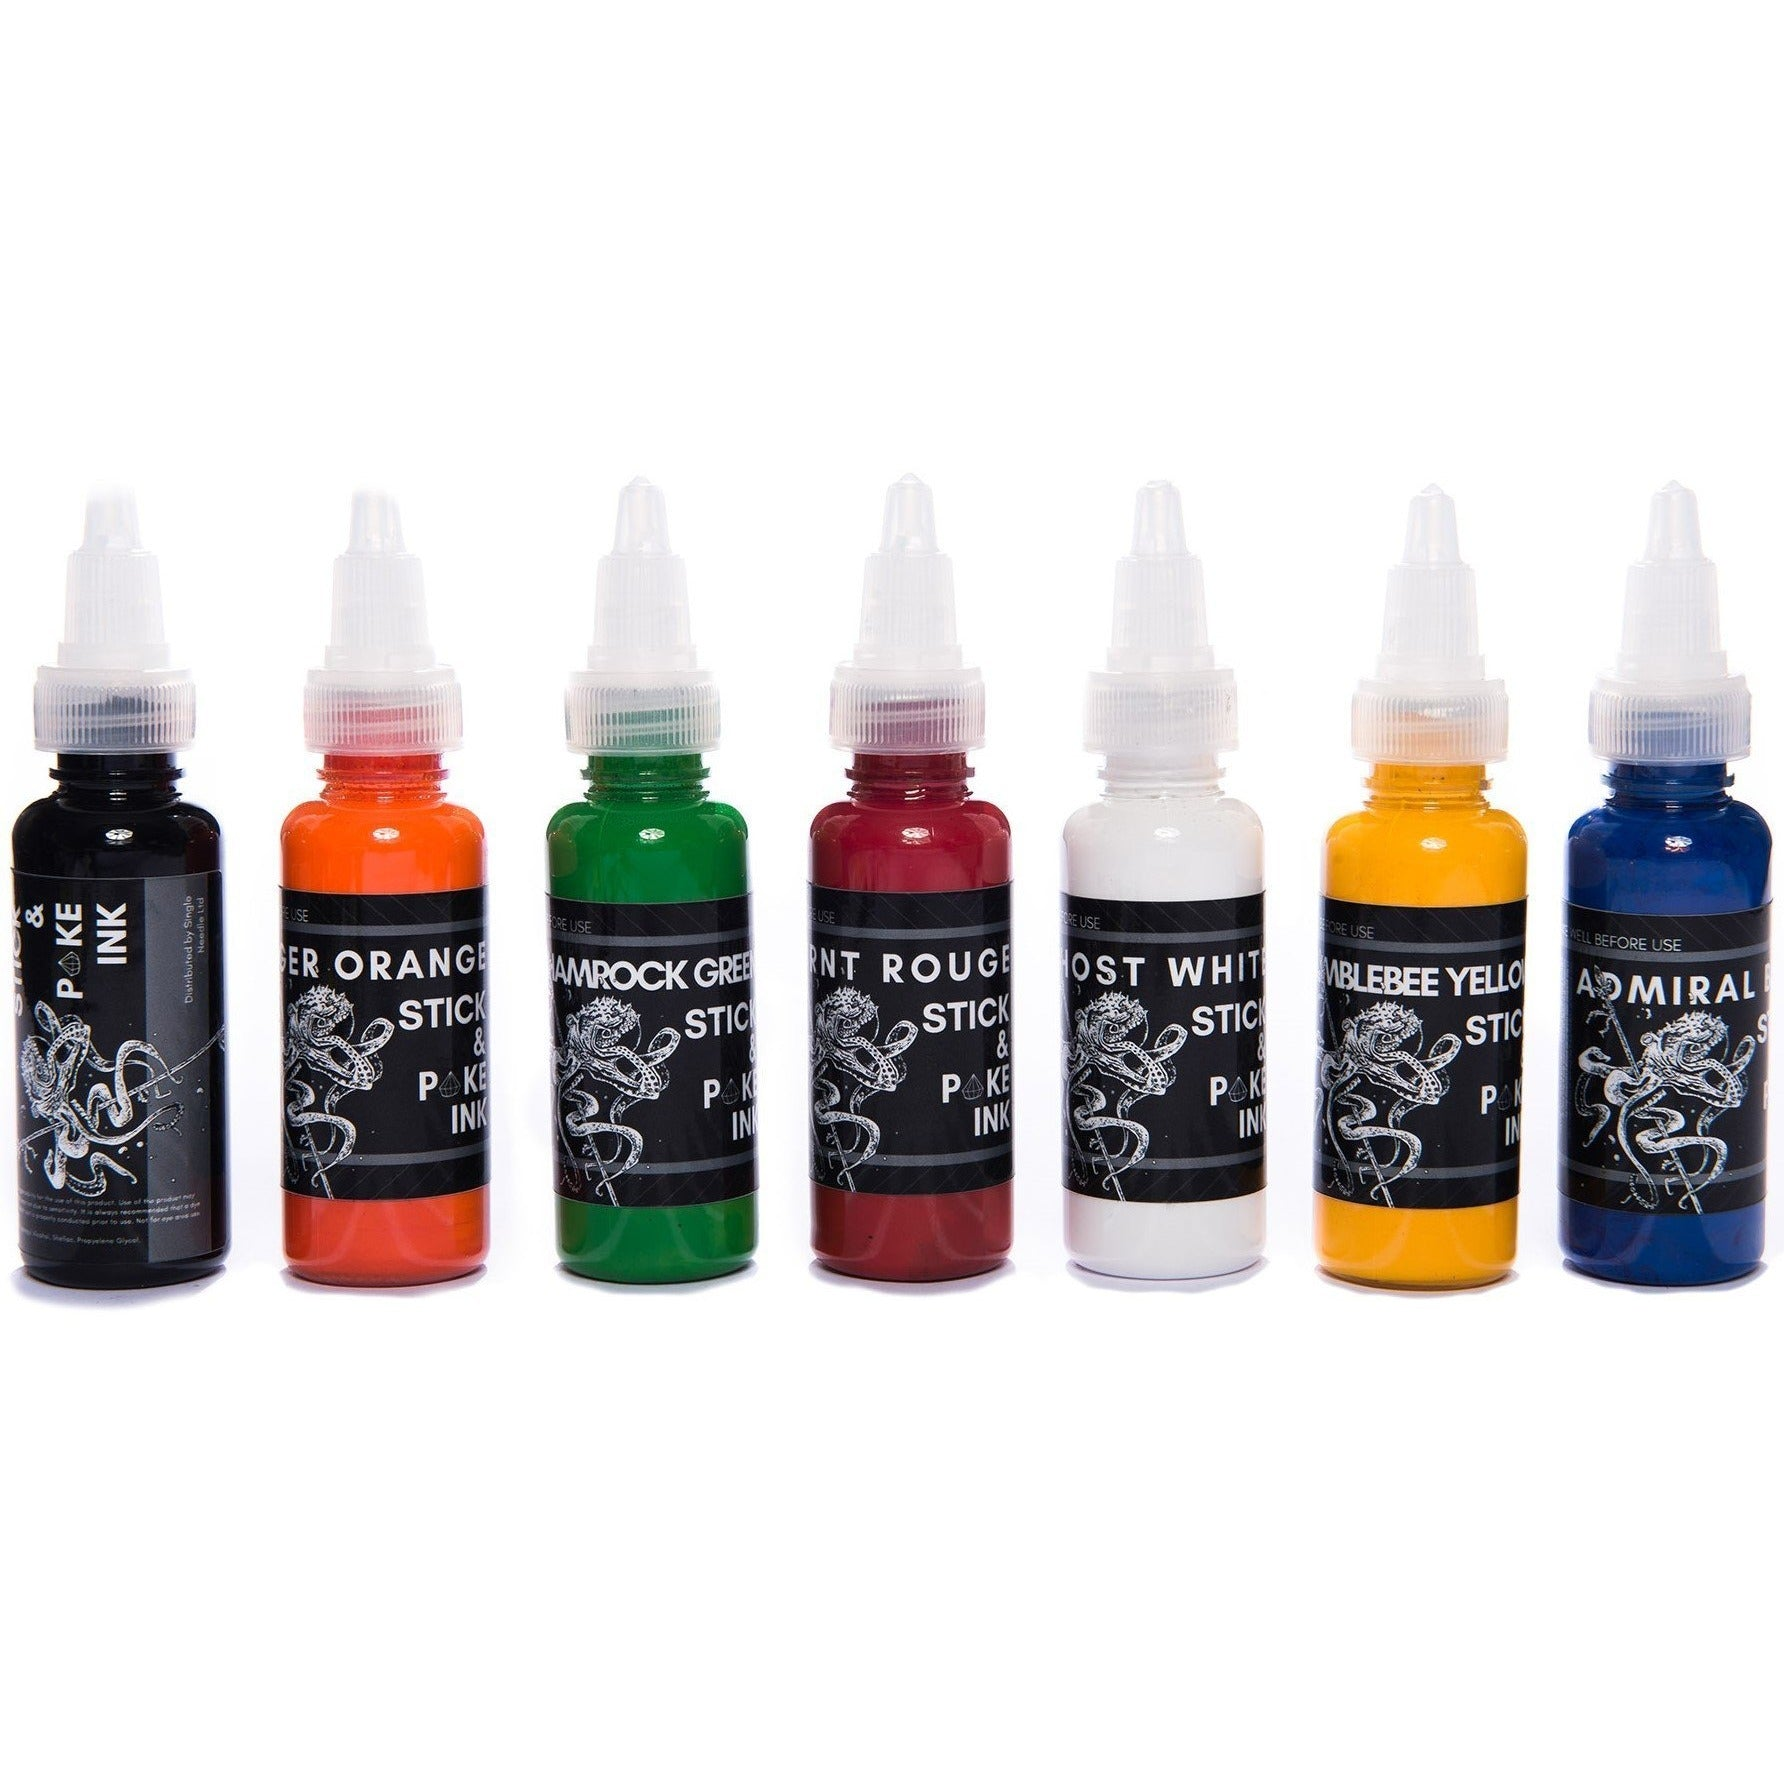 Stick & Poke Full Tattoo Ink Set - 15ml/ 30ml-SINGLE NEEDLE-15ml Ink Set-None-SINGLE NEEDLE Stick & Poke Tattoo